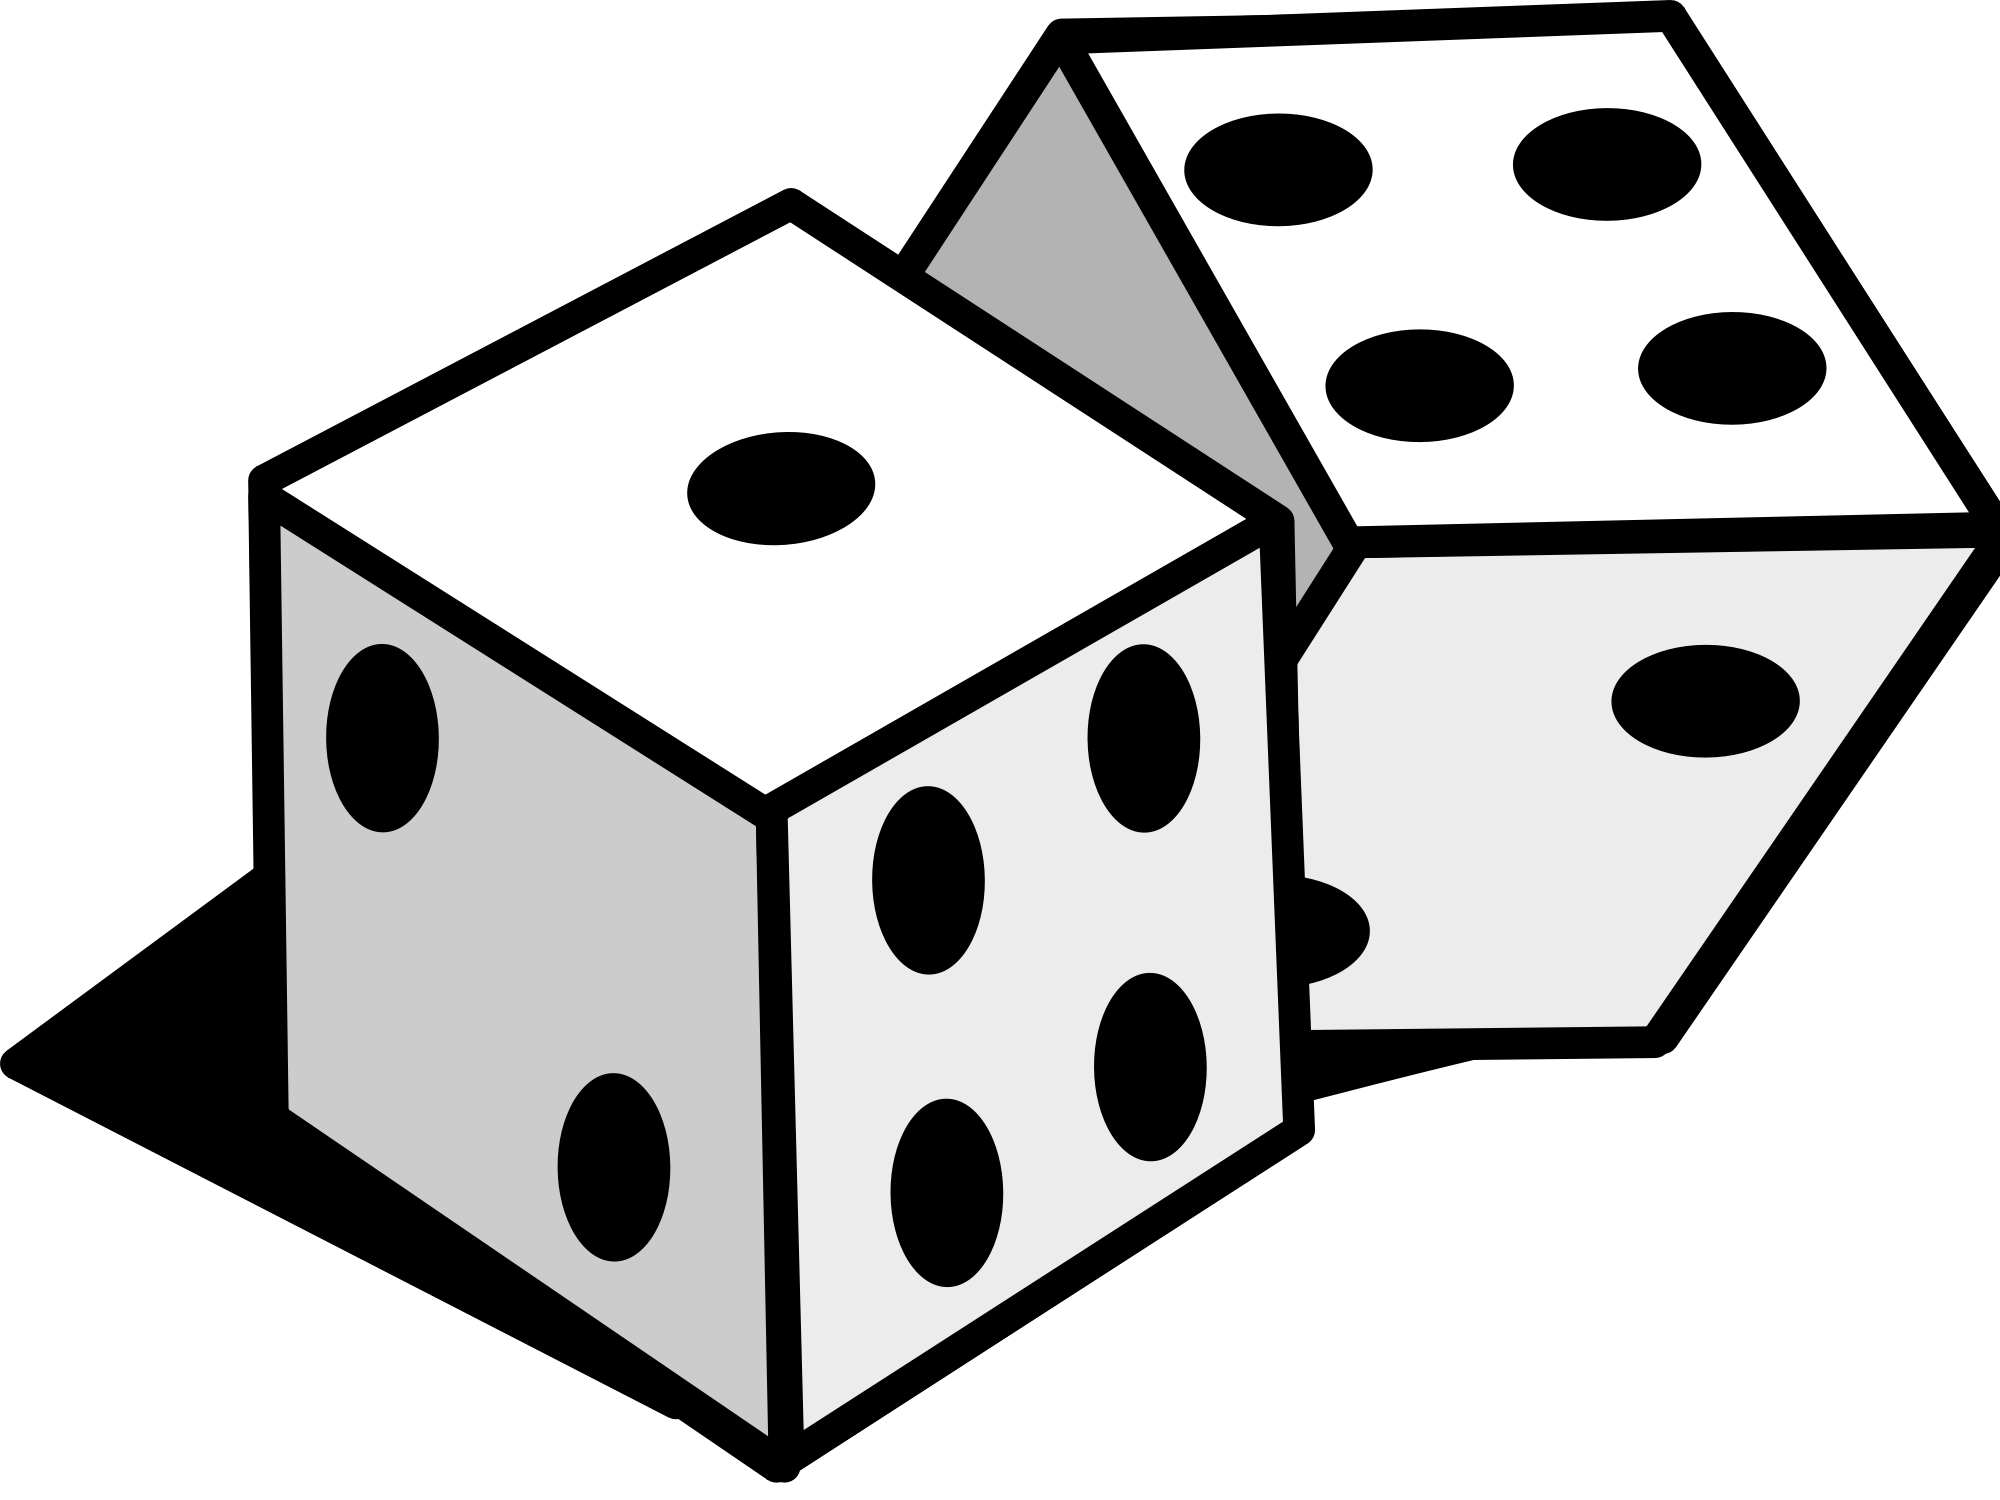 Game clipart probability. Images of dice group